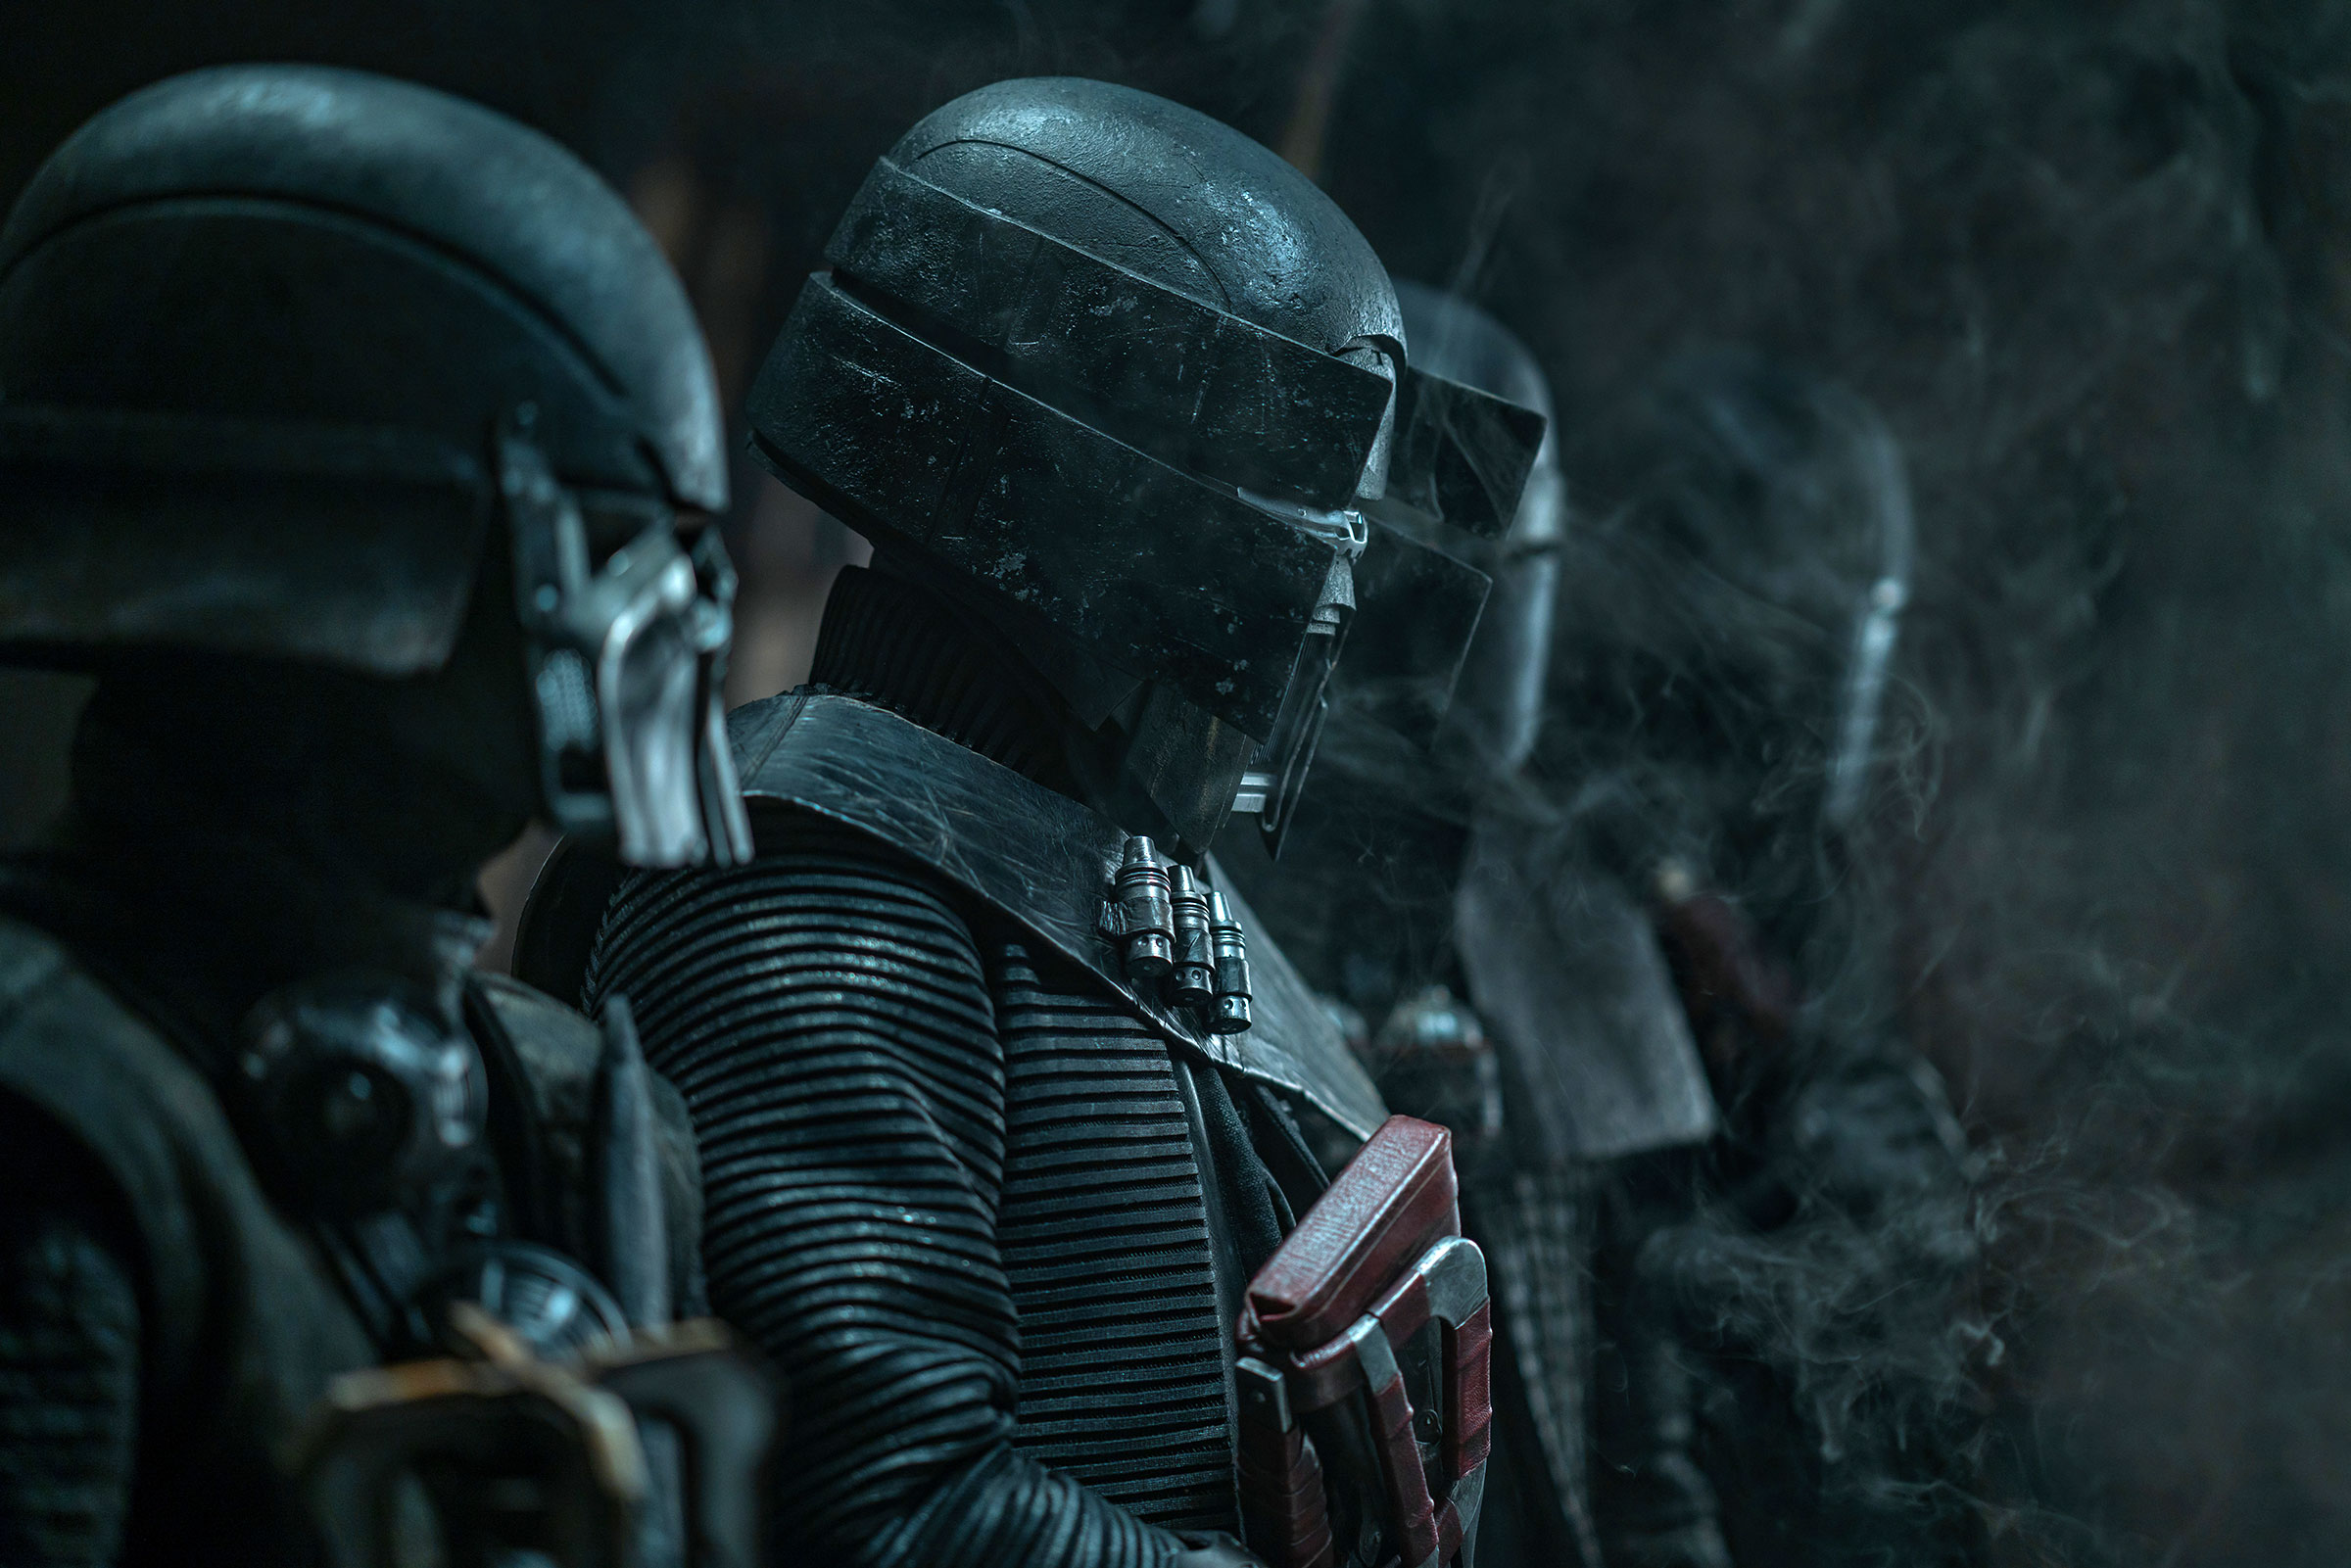 The Sith voices chanting for the Emperor in The Rise of Skywalker are no longer a mystery